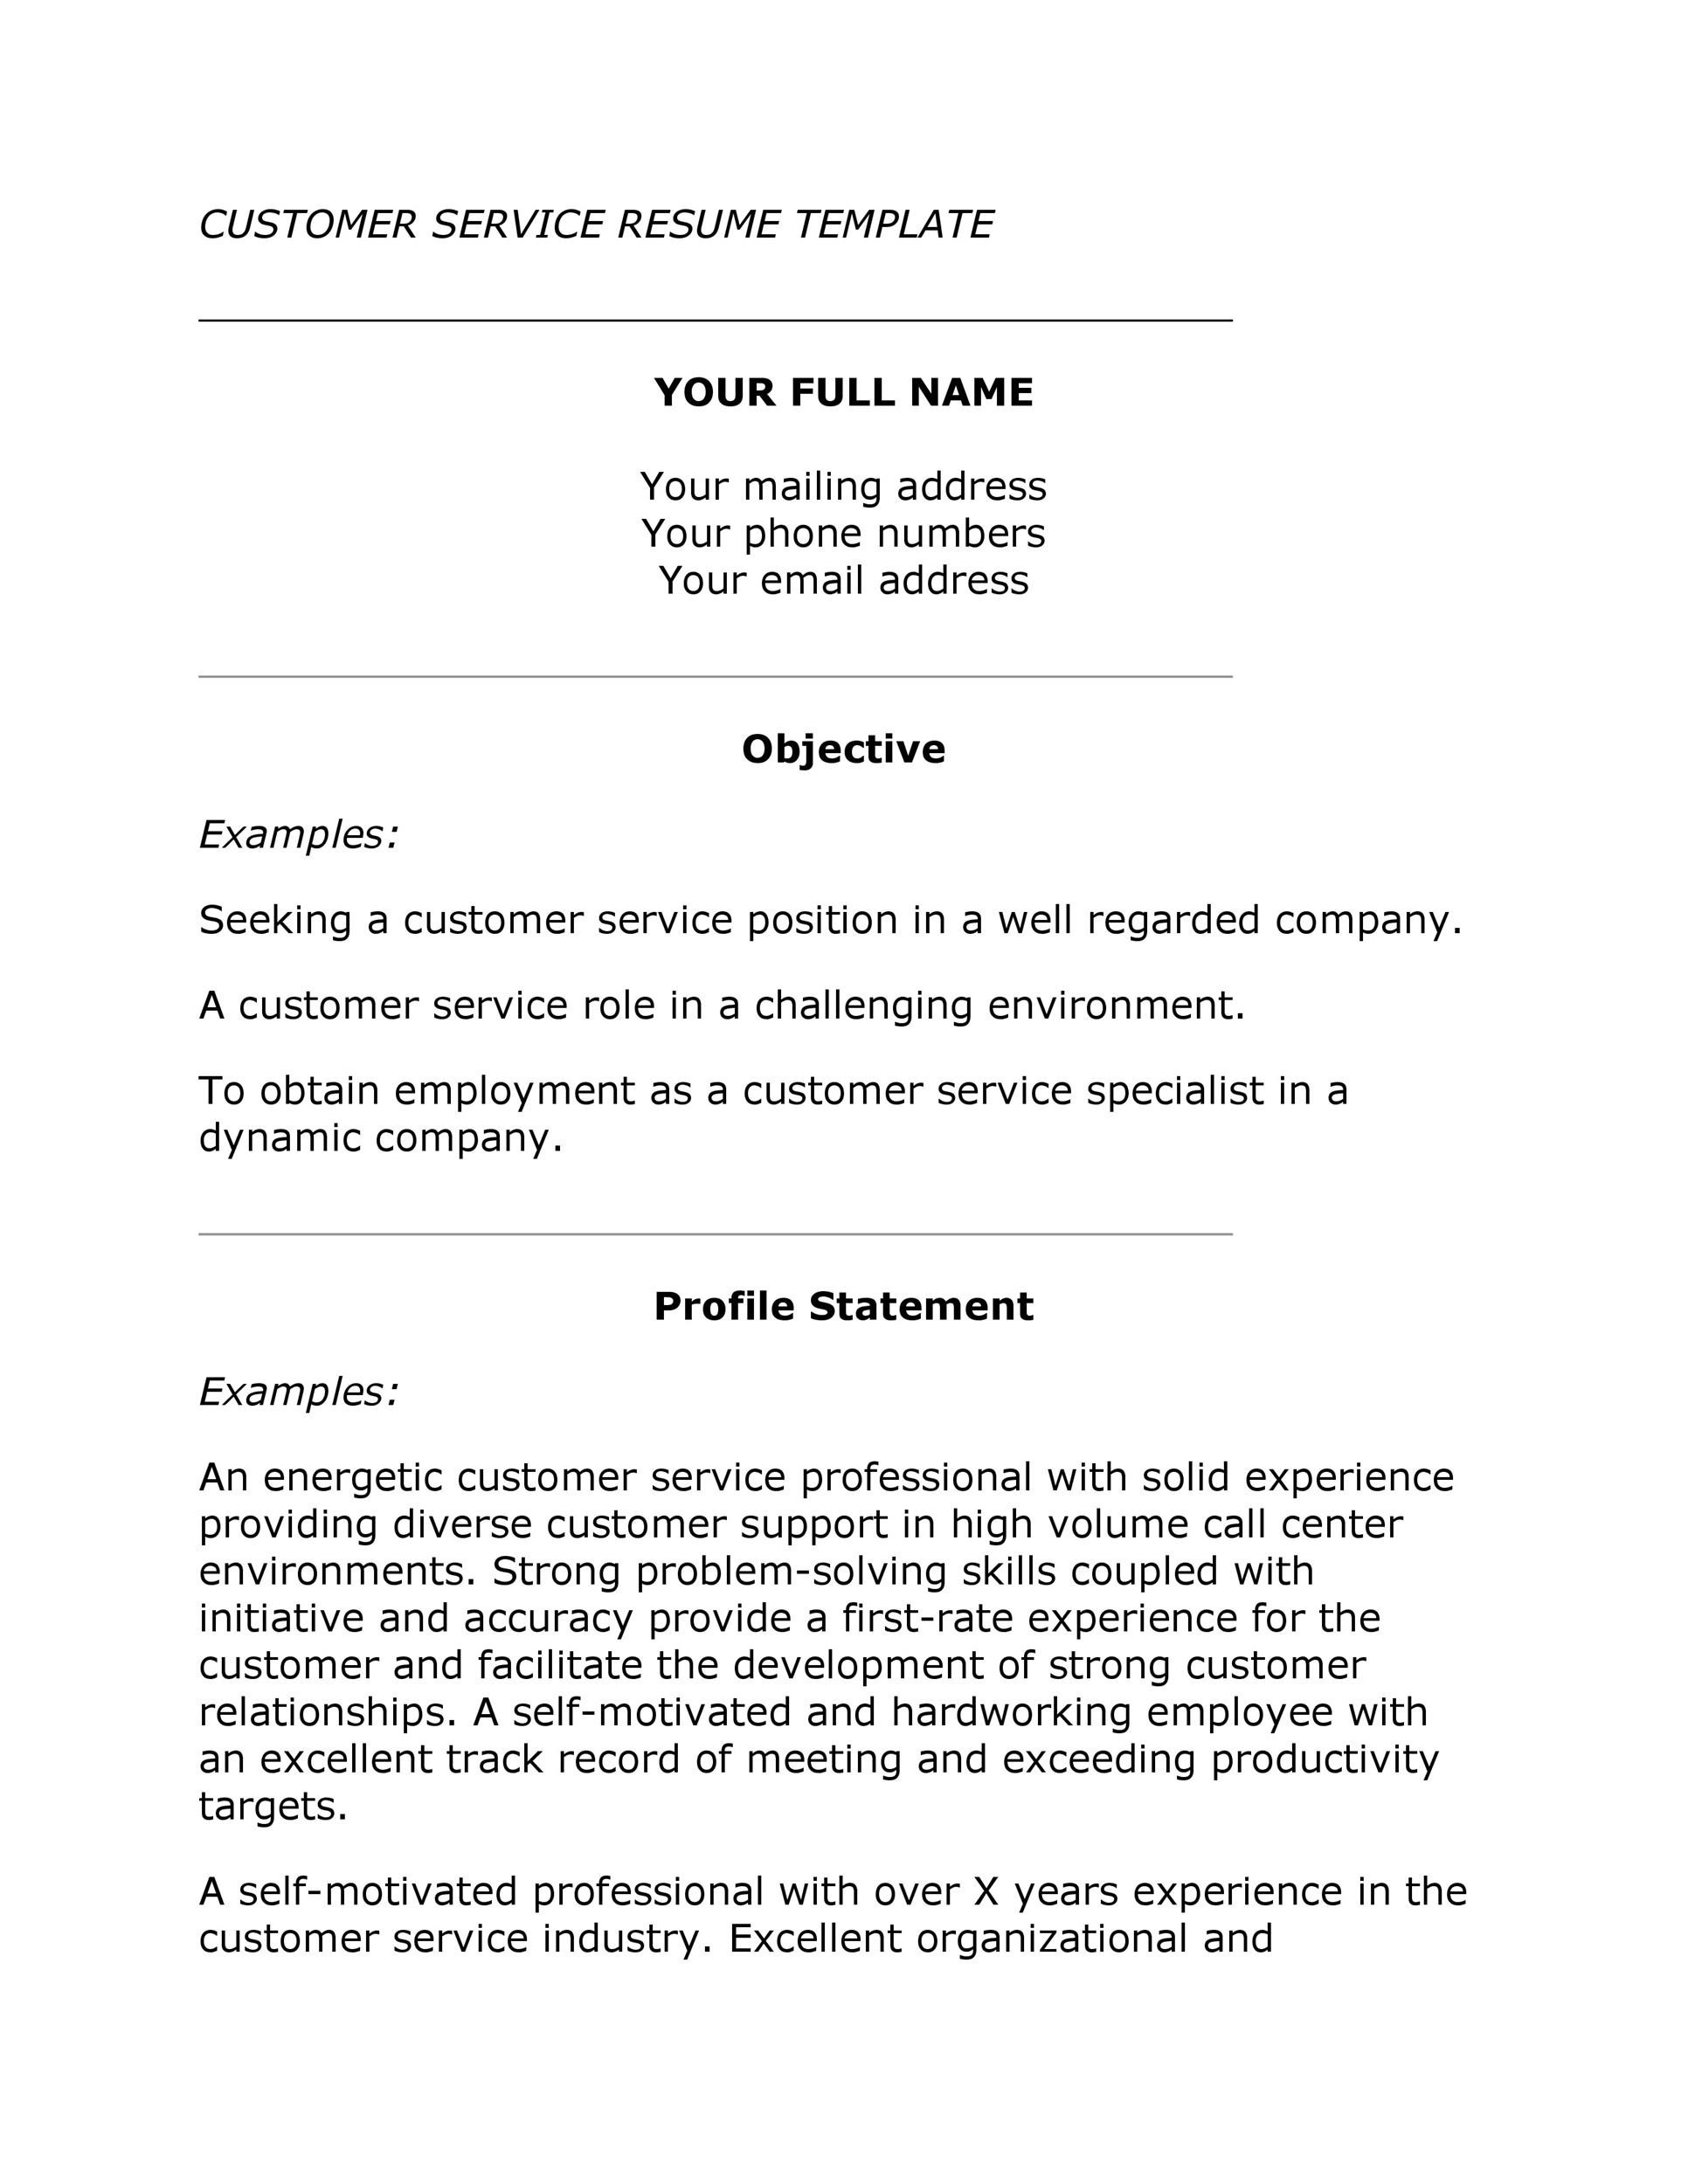 Customer Service Resume Templates | Resume Template & Professional